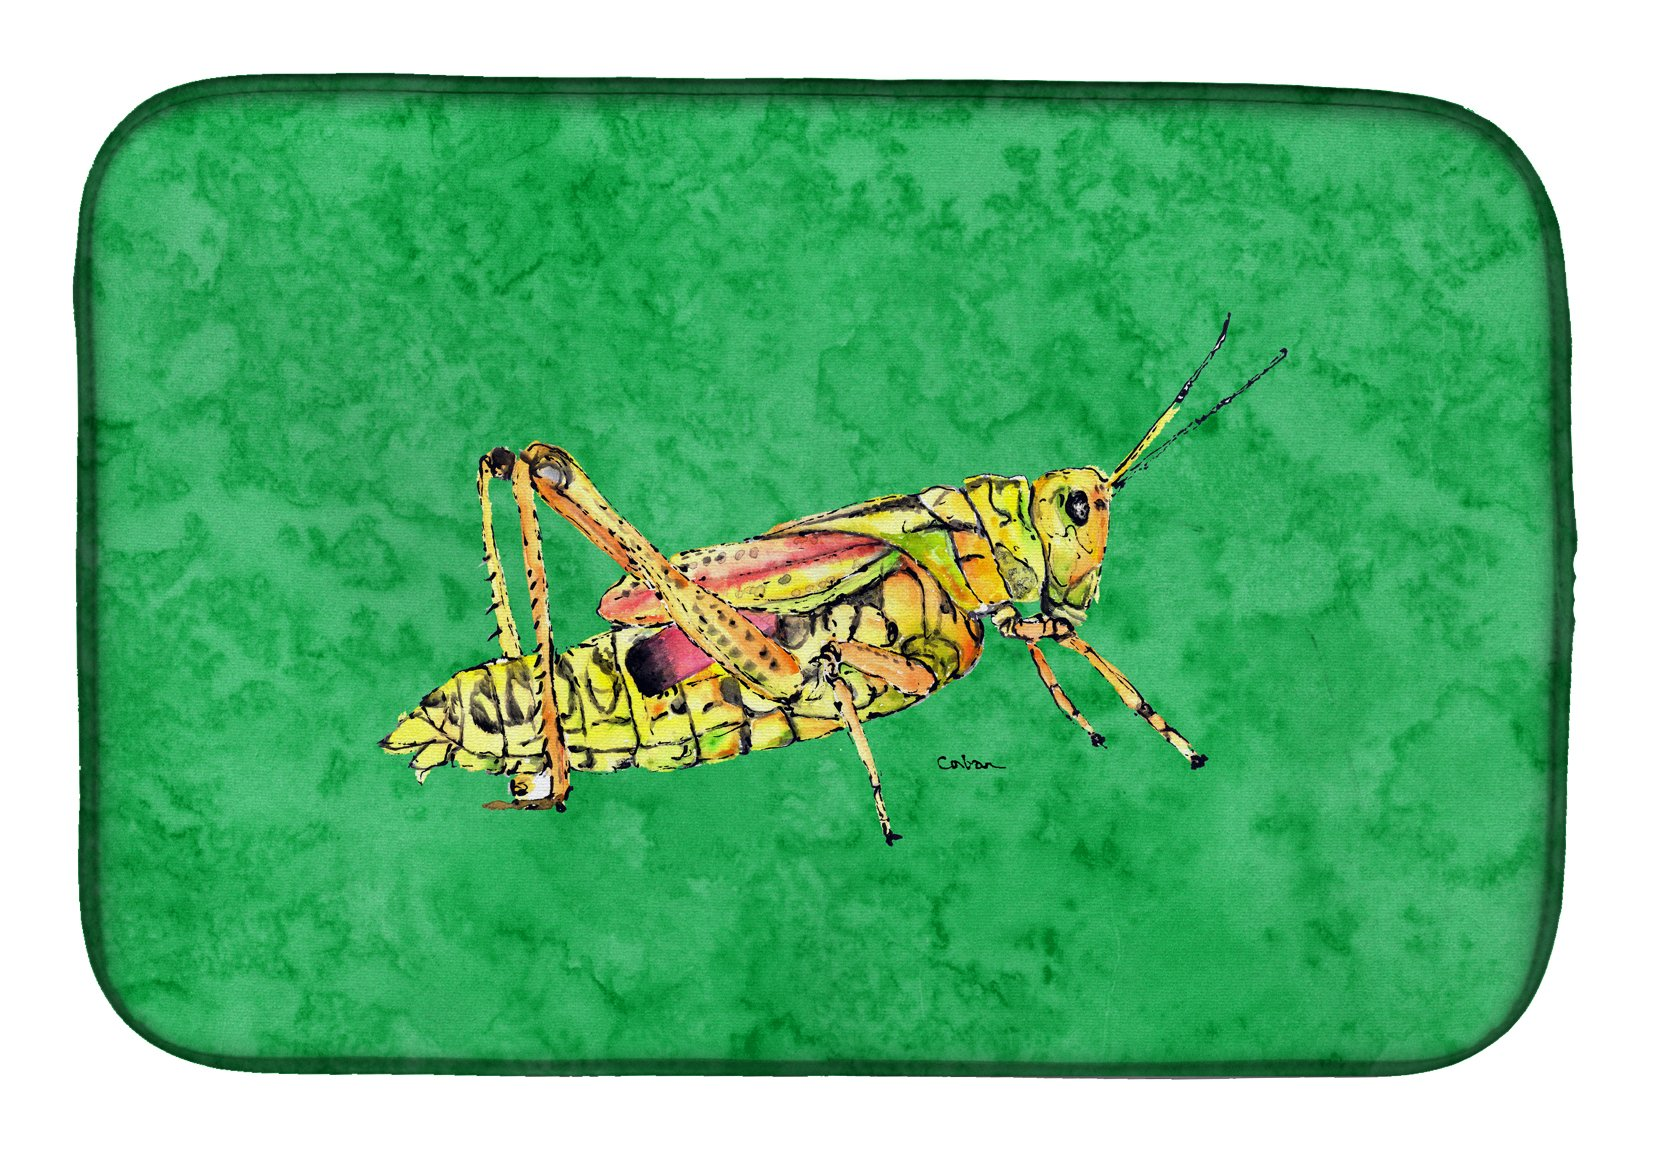 Grasshopper on Green Dish Drying Mat 8849DDM by Caroline's Treasures